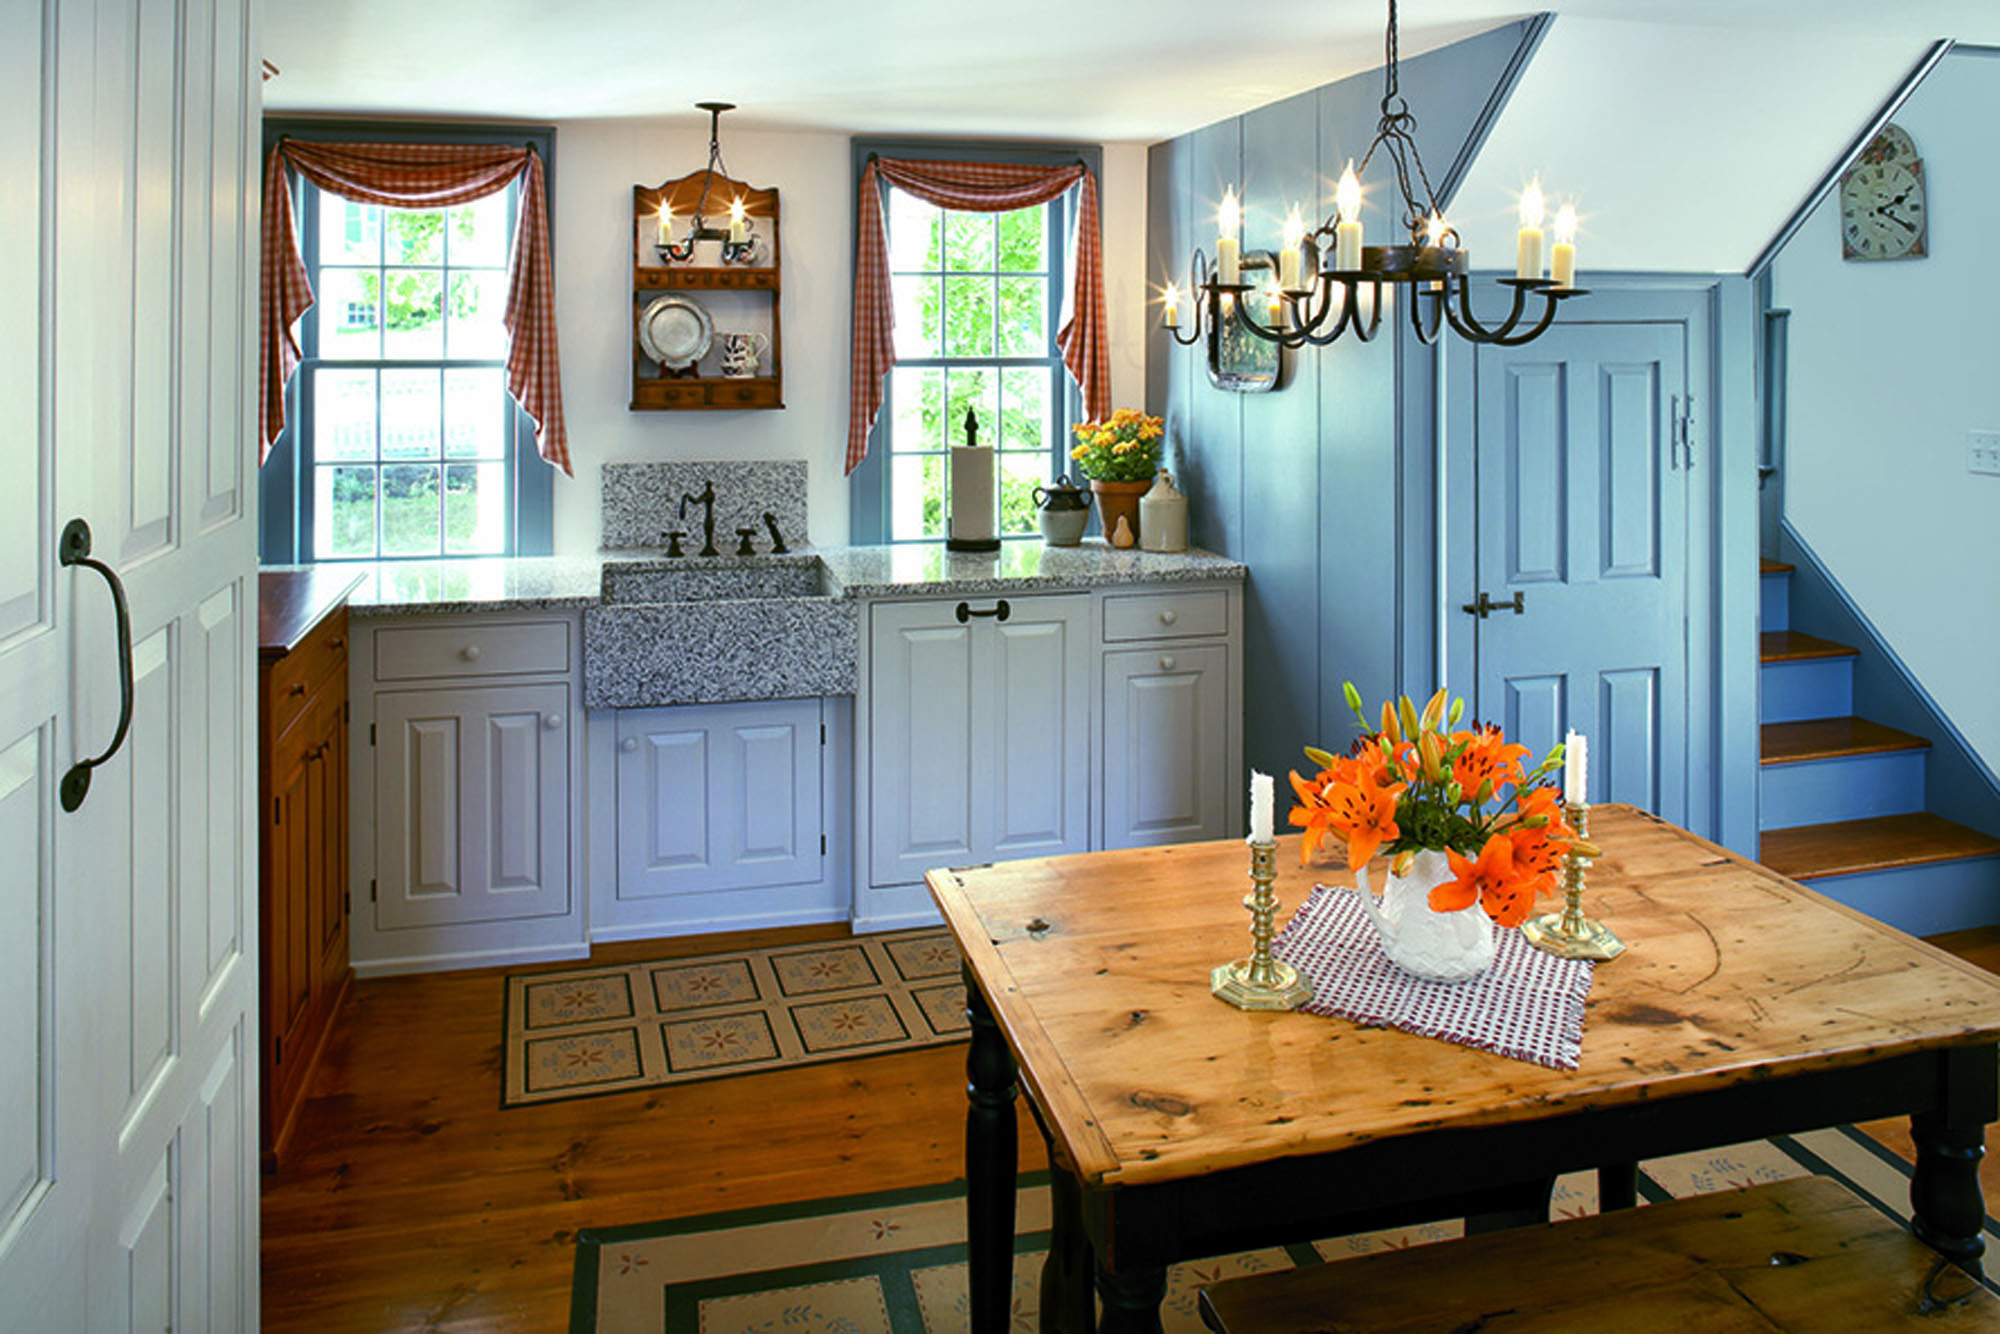 Tidy is the word for a new kitchen, modest in size but rich in quality, in a fine old Massachusetts house.